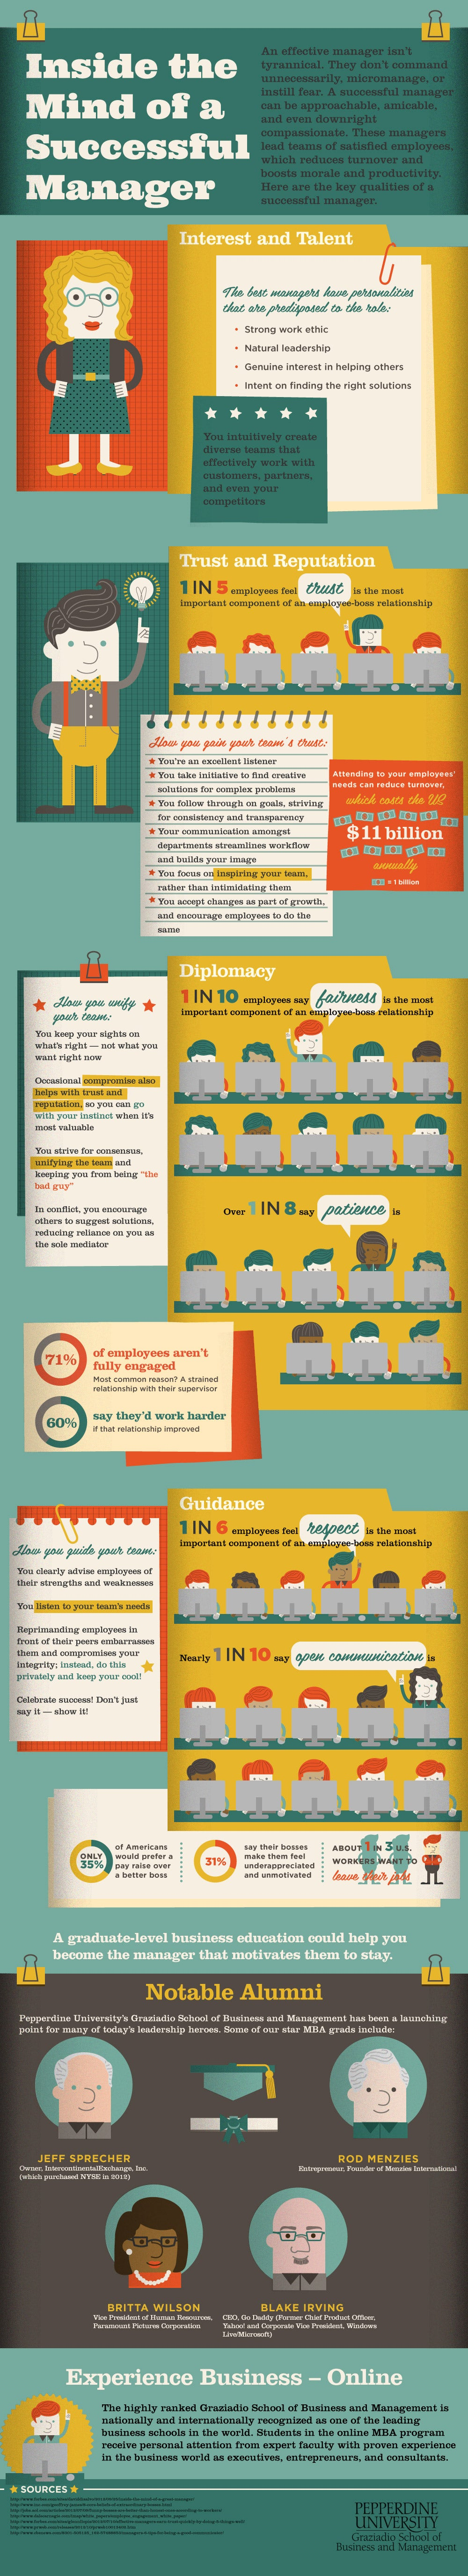 Trust, Fairness, Respect: Qualities of a Good Boss and a Great Leader (Infographic)